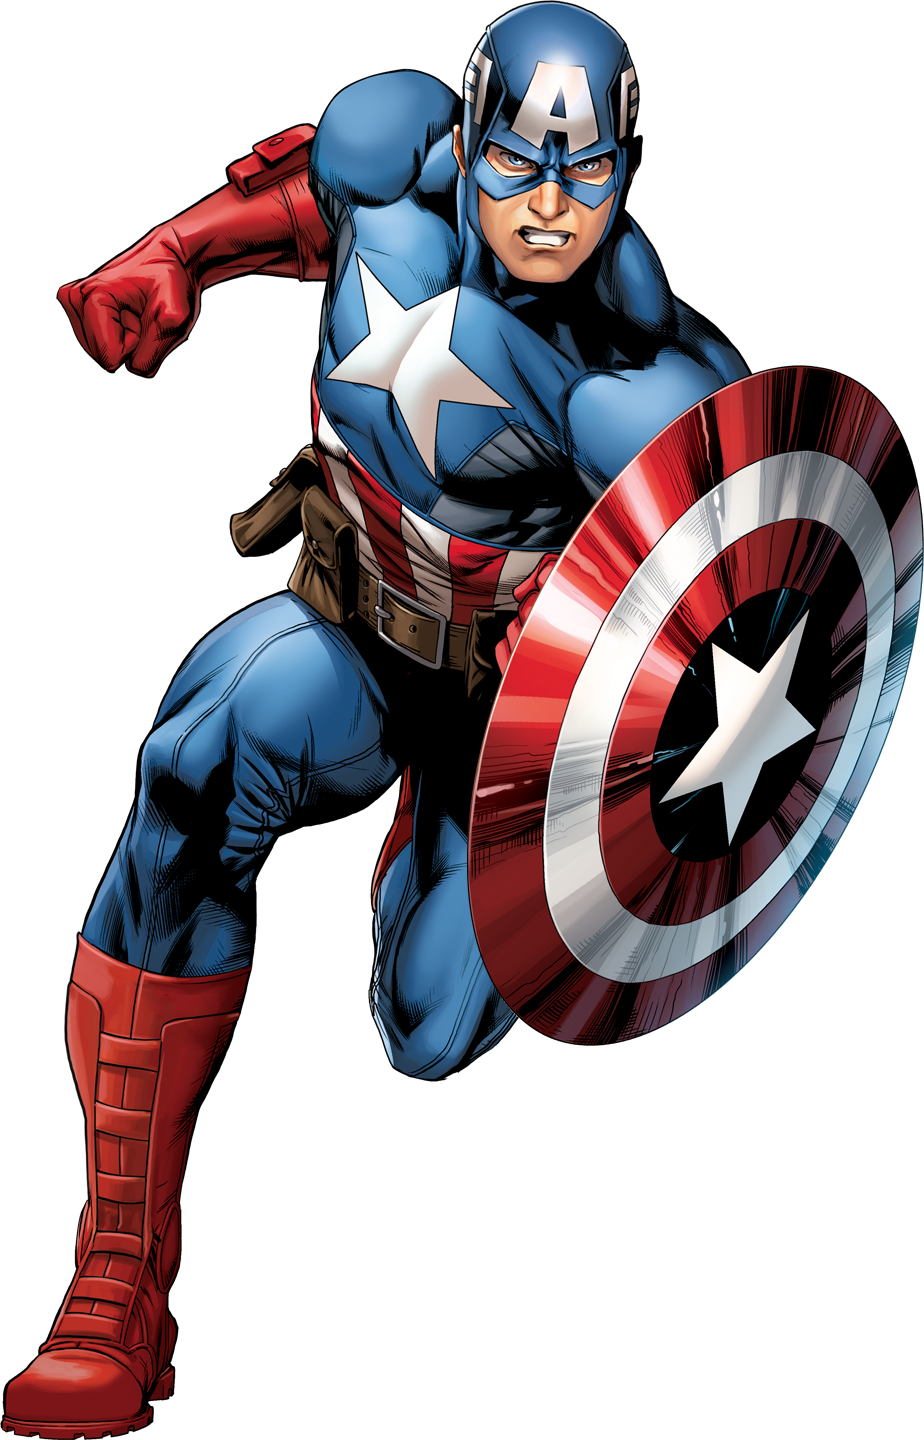 Marvel super heroes clipart banner freeuse stock Marvel Captain America PNG Image - PurePNG | Free transparent CC0 ... banner freeuse stock